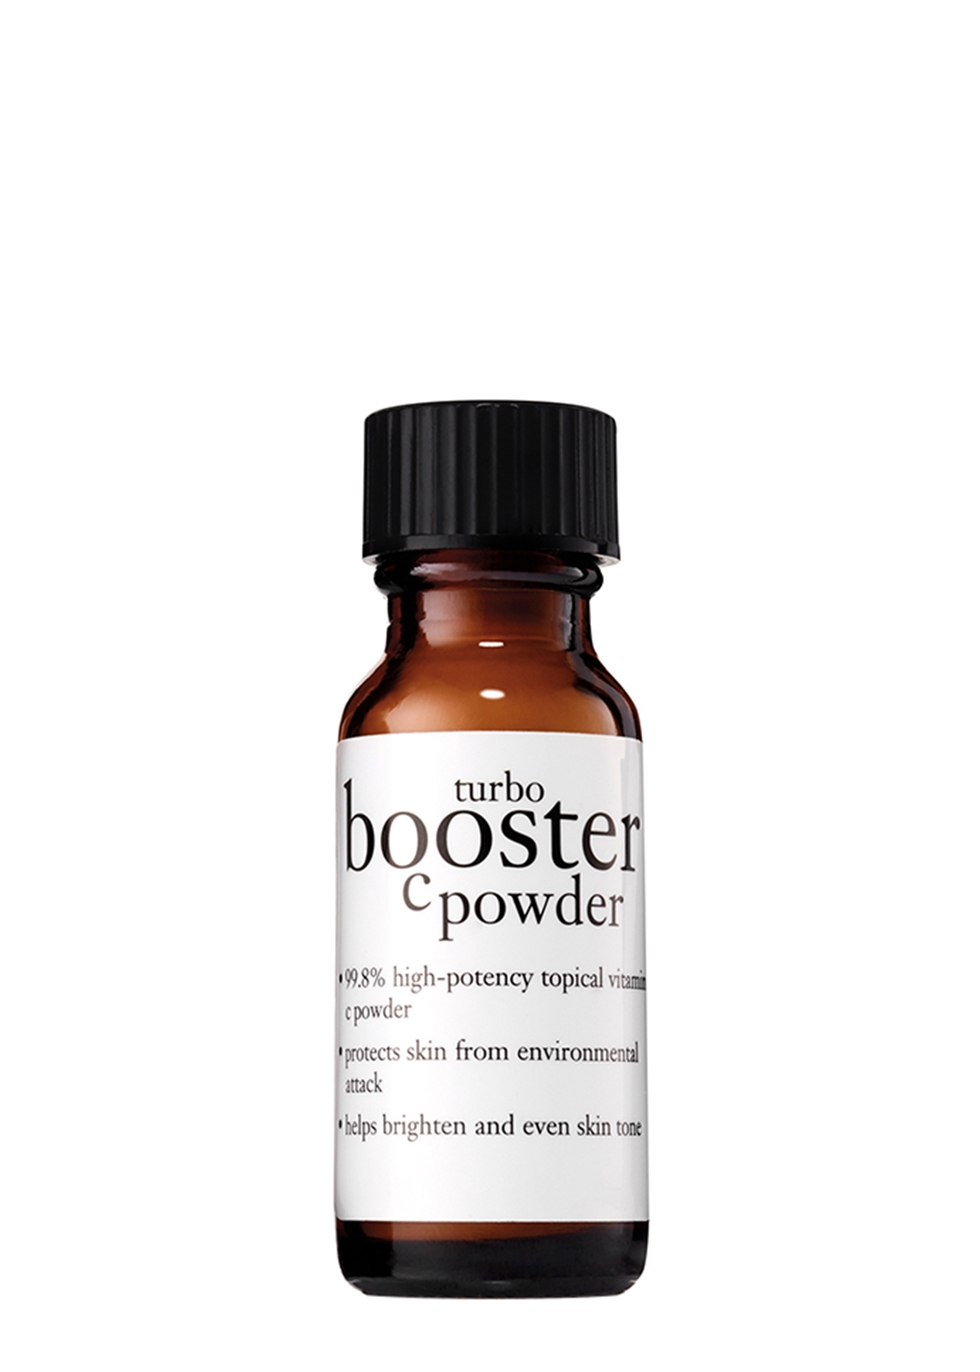 Turbo Booster C Powder 7.1g - PHILOSOPHY